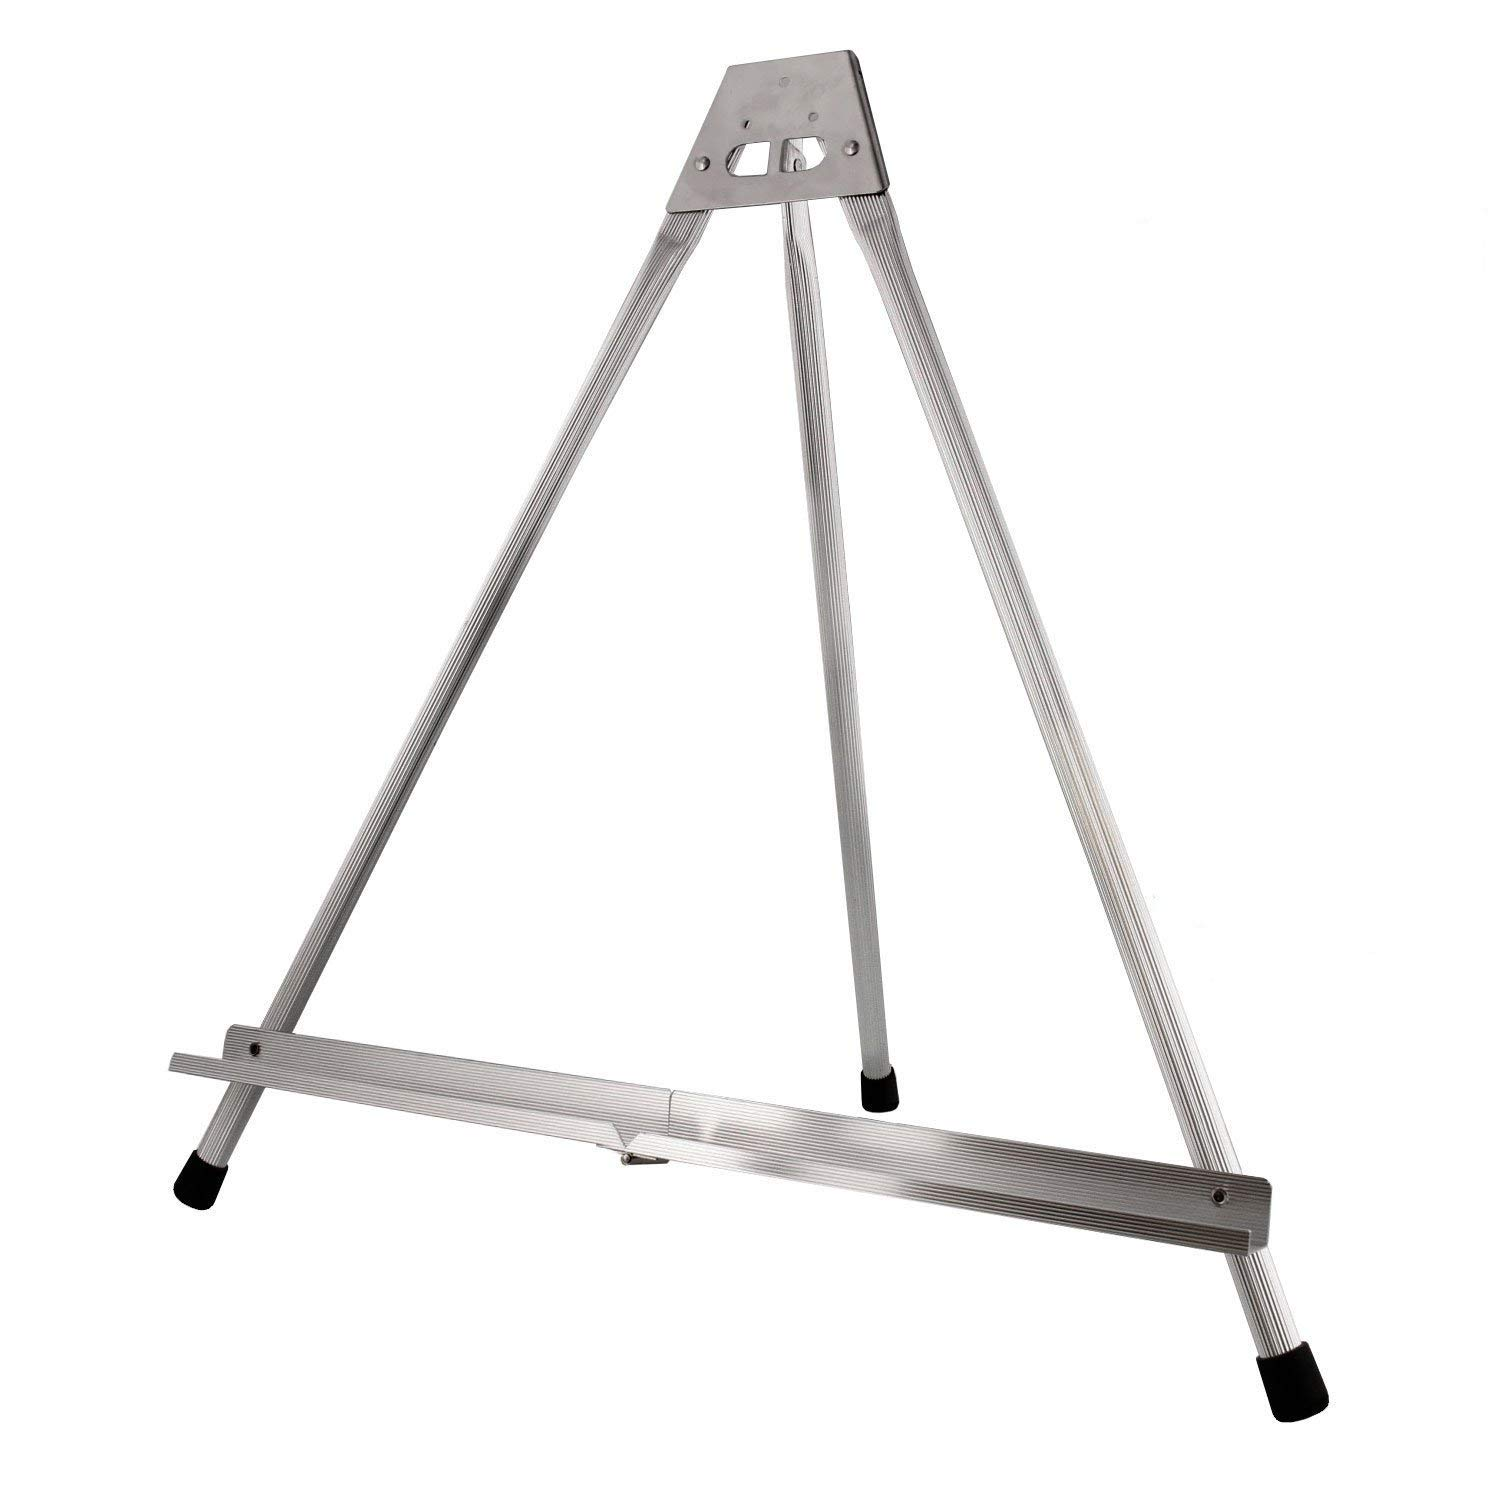 Brustro Aluminum Tabletop Easel Tri-Pod Design with Rubber Feet Canvas Holds Upto 18